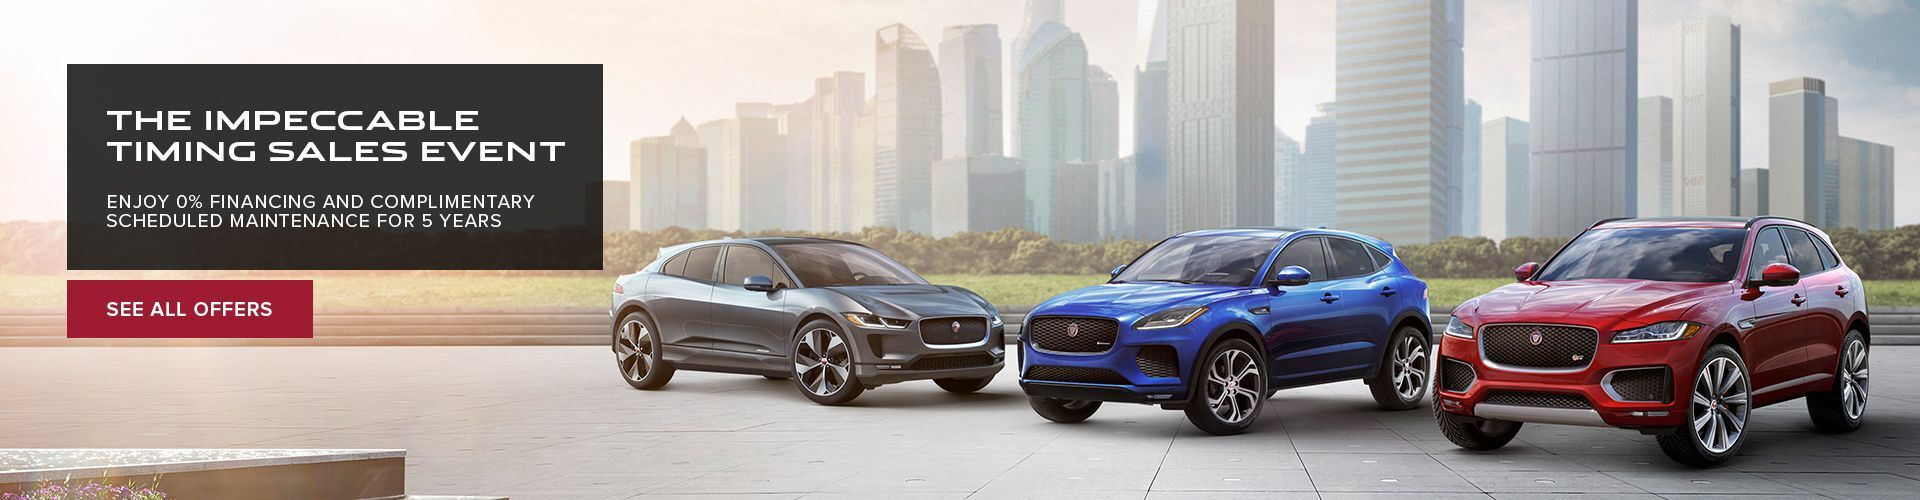 2019 Jaguar Spring Sales Event